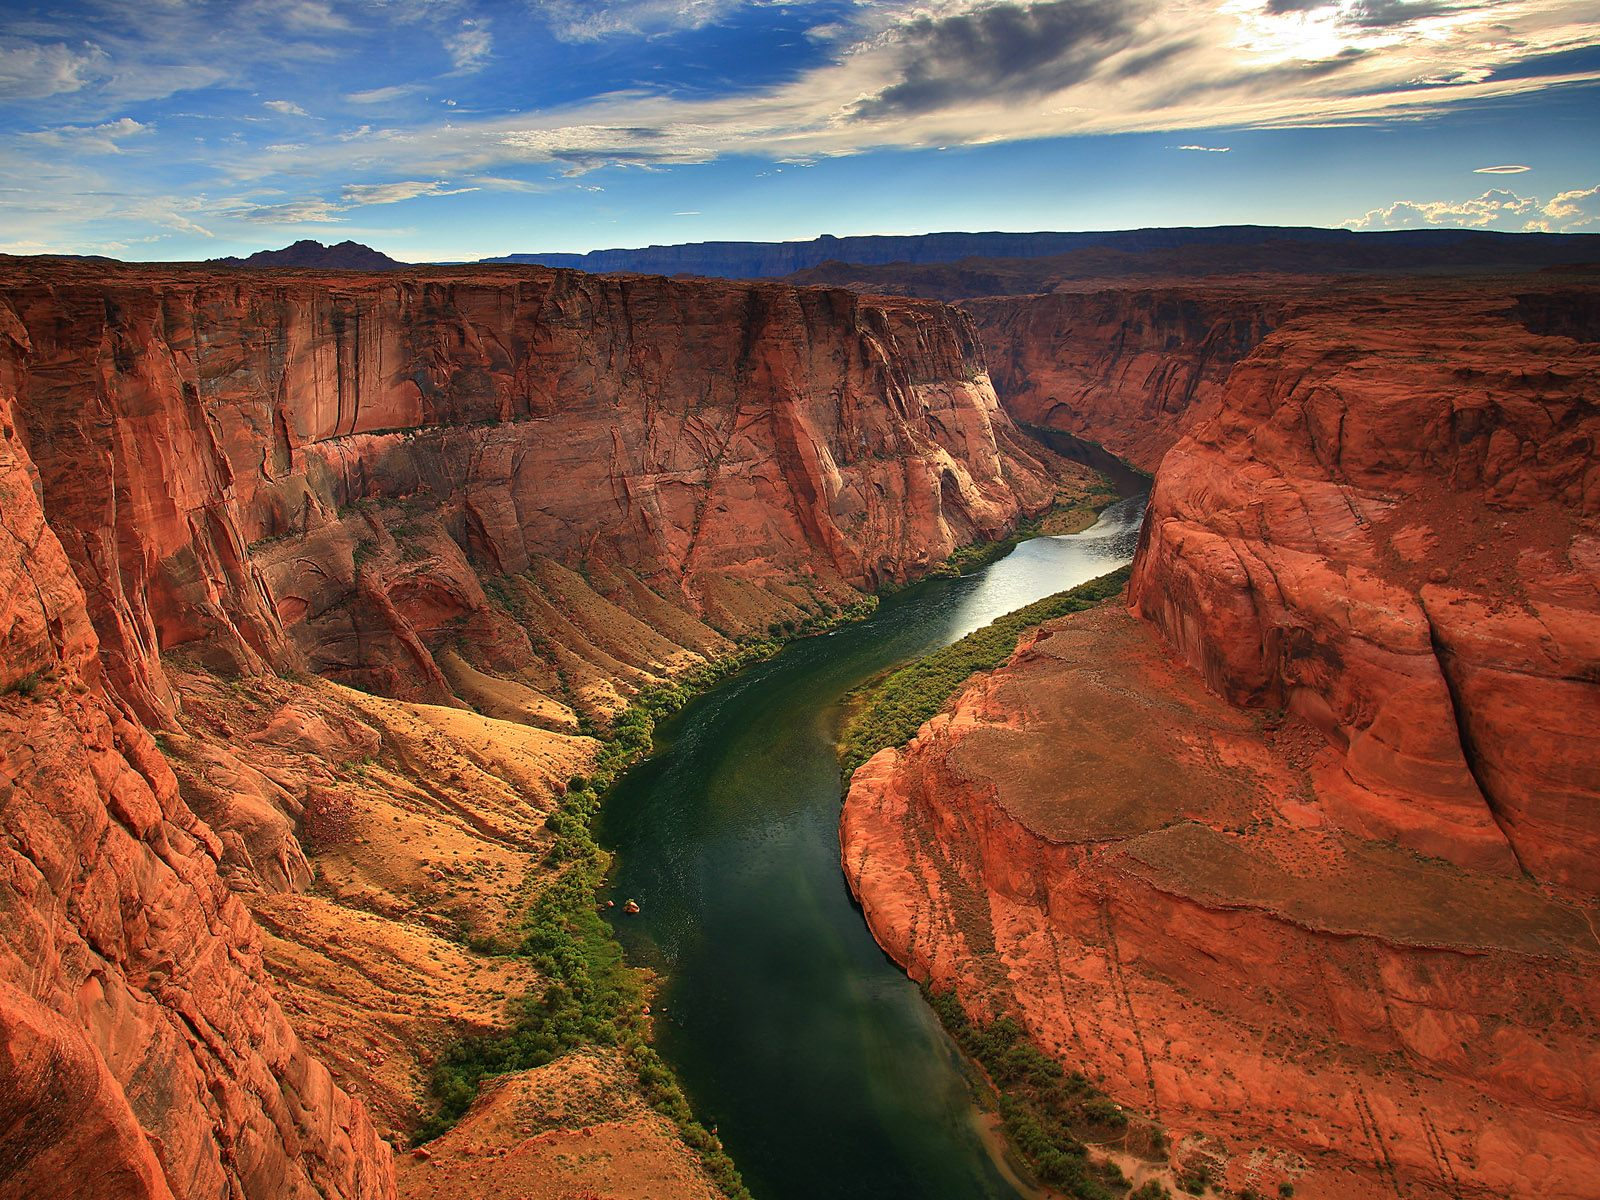 Breathtaking Landscapes, Arizona, USA, River of life Colorado River, Overview